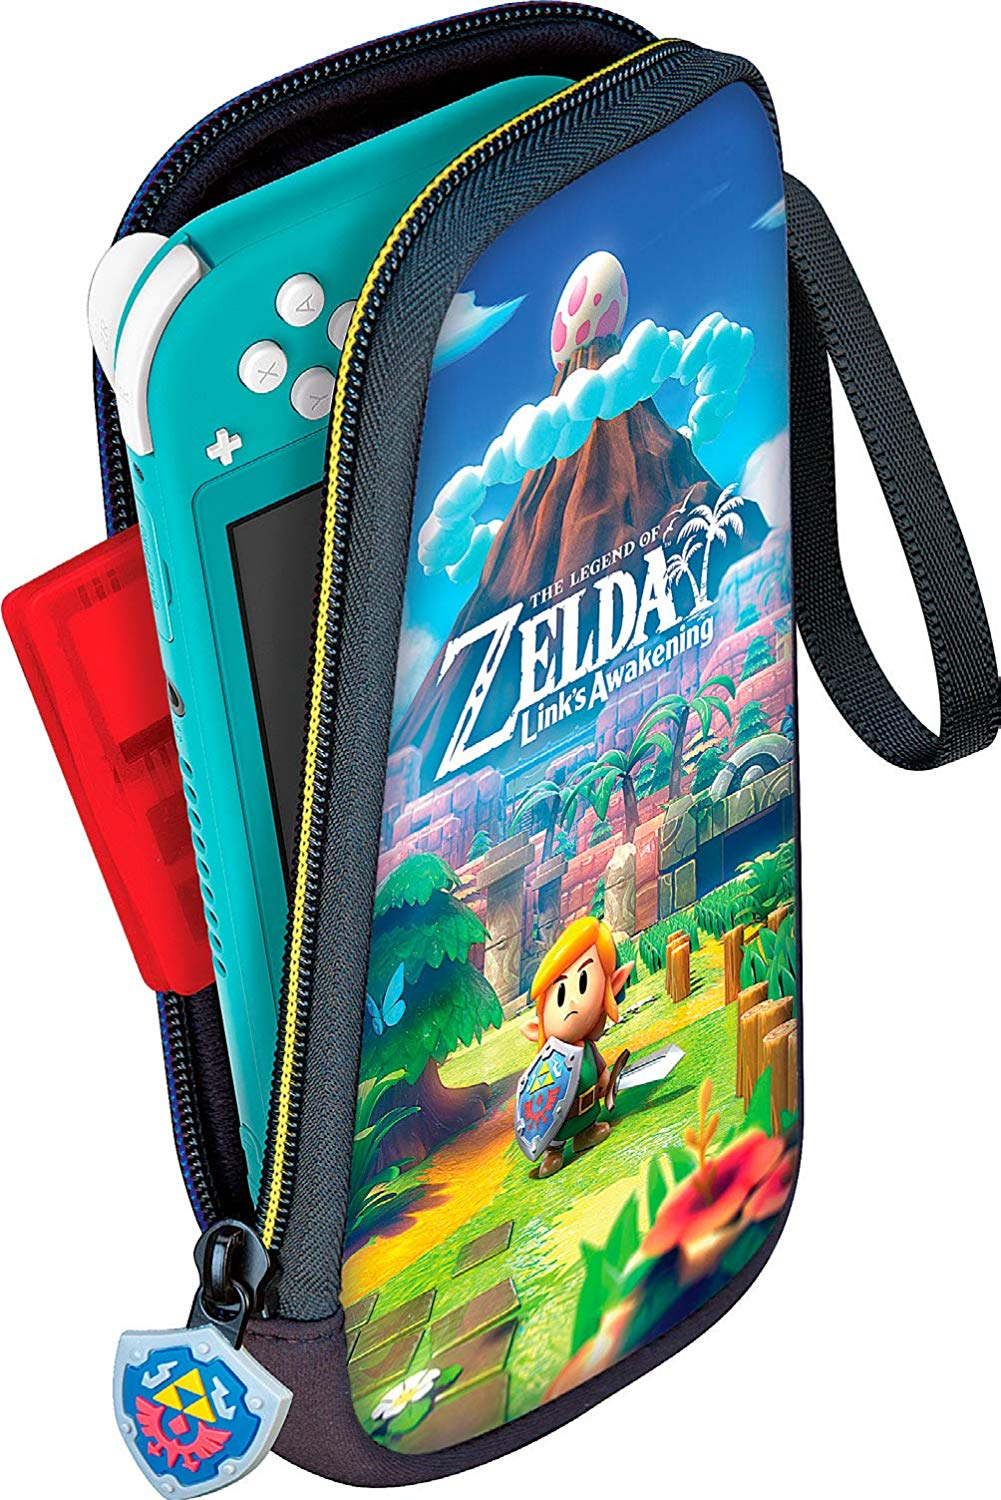 Game Traveler Slim Travel Case Zelda Link's Awakening - Nintendo Switch Lite